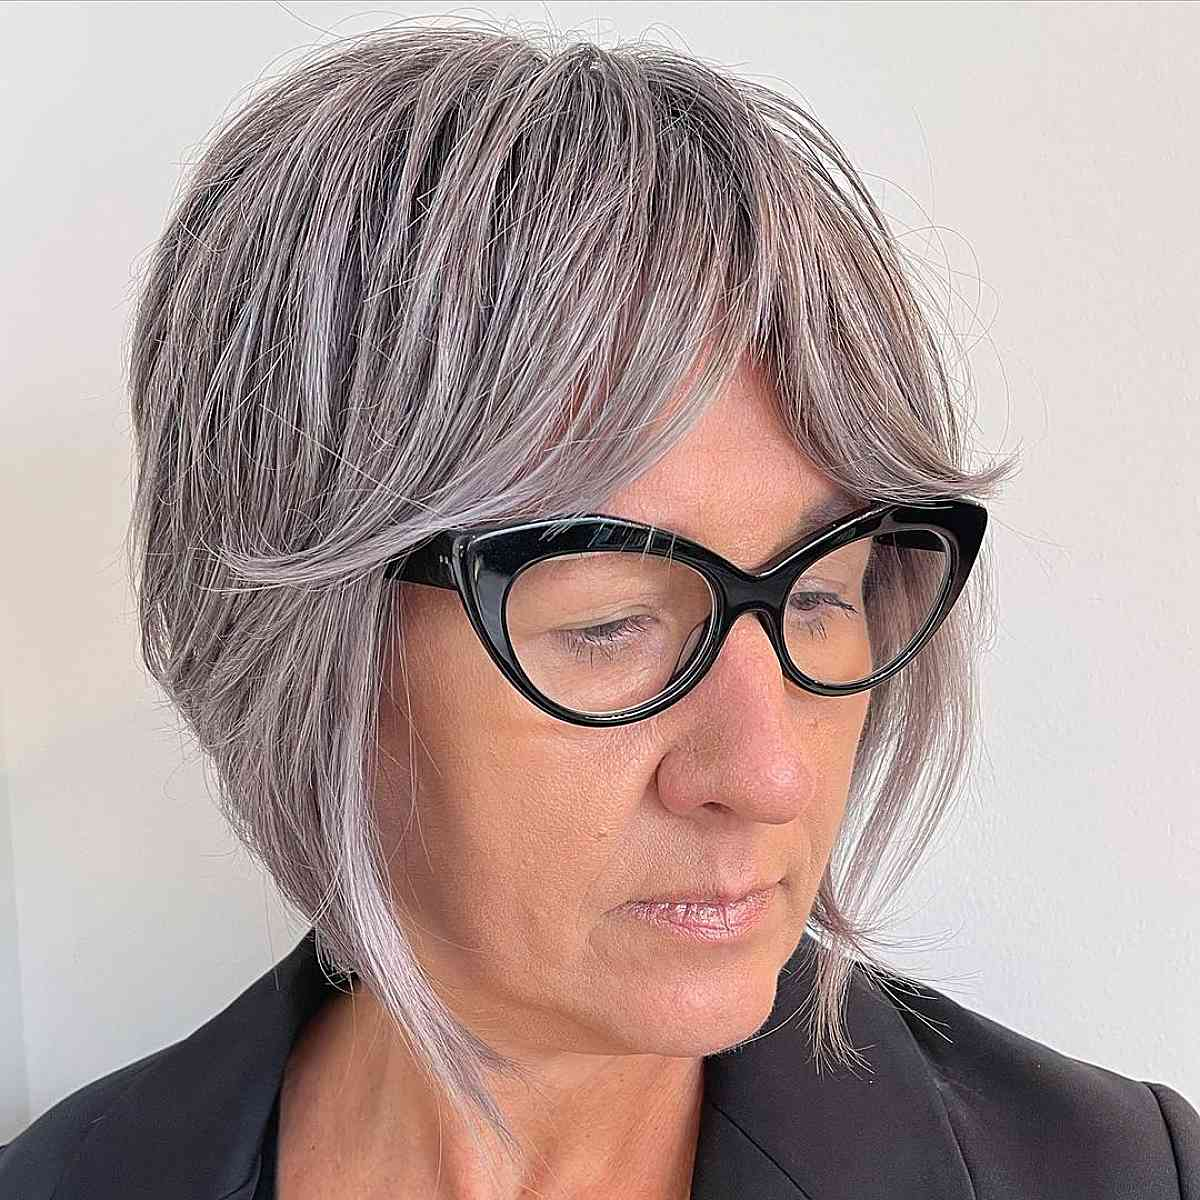 Straight bob for woman over 50 with glasses